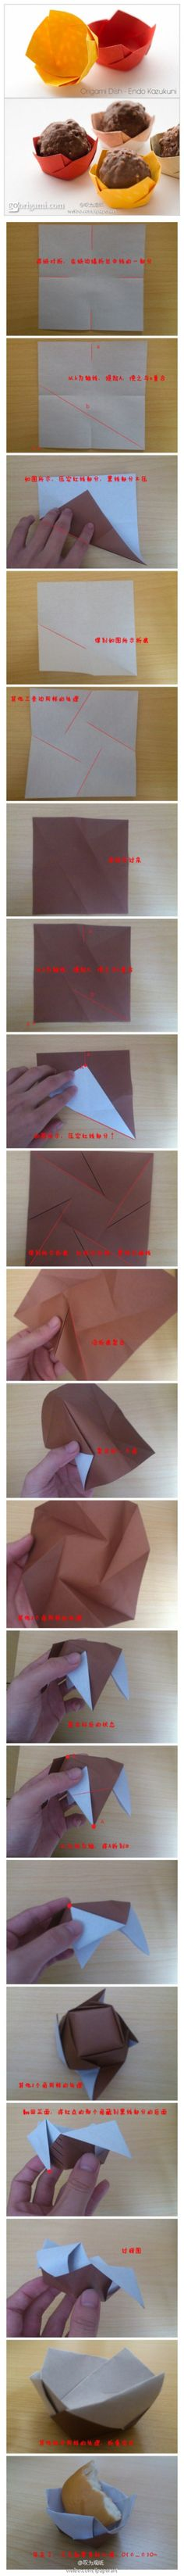 This is the twist origami bowl everyone learns to make at CenterFold. Does anyone know the designer? Origami Paper Folding, Origami And Kirigami, Paper Crafts Origami, Diy Paper, Paper Toy, Ideias Diy, Origami Tutorial, Diy And Crafts, Packaging